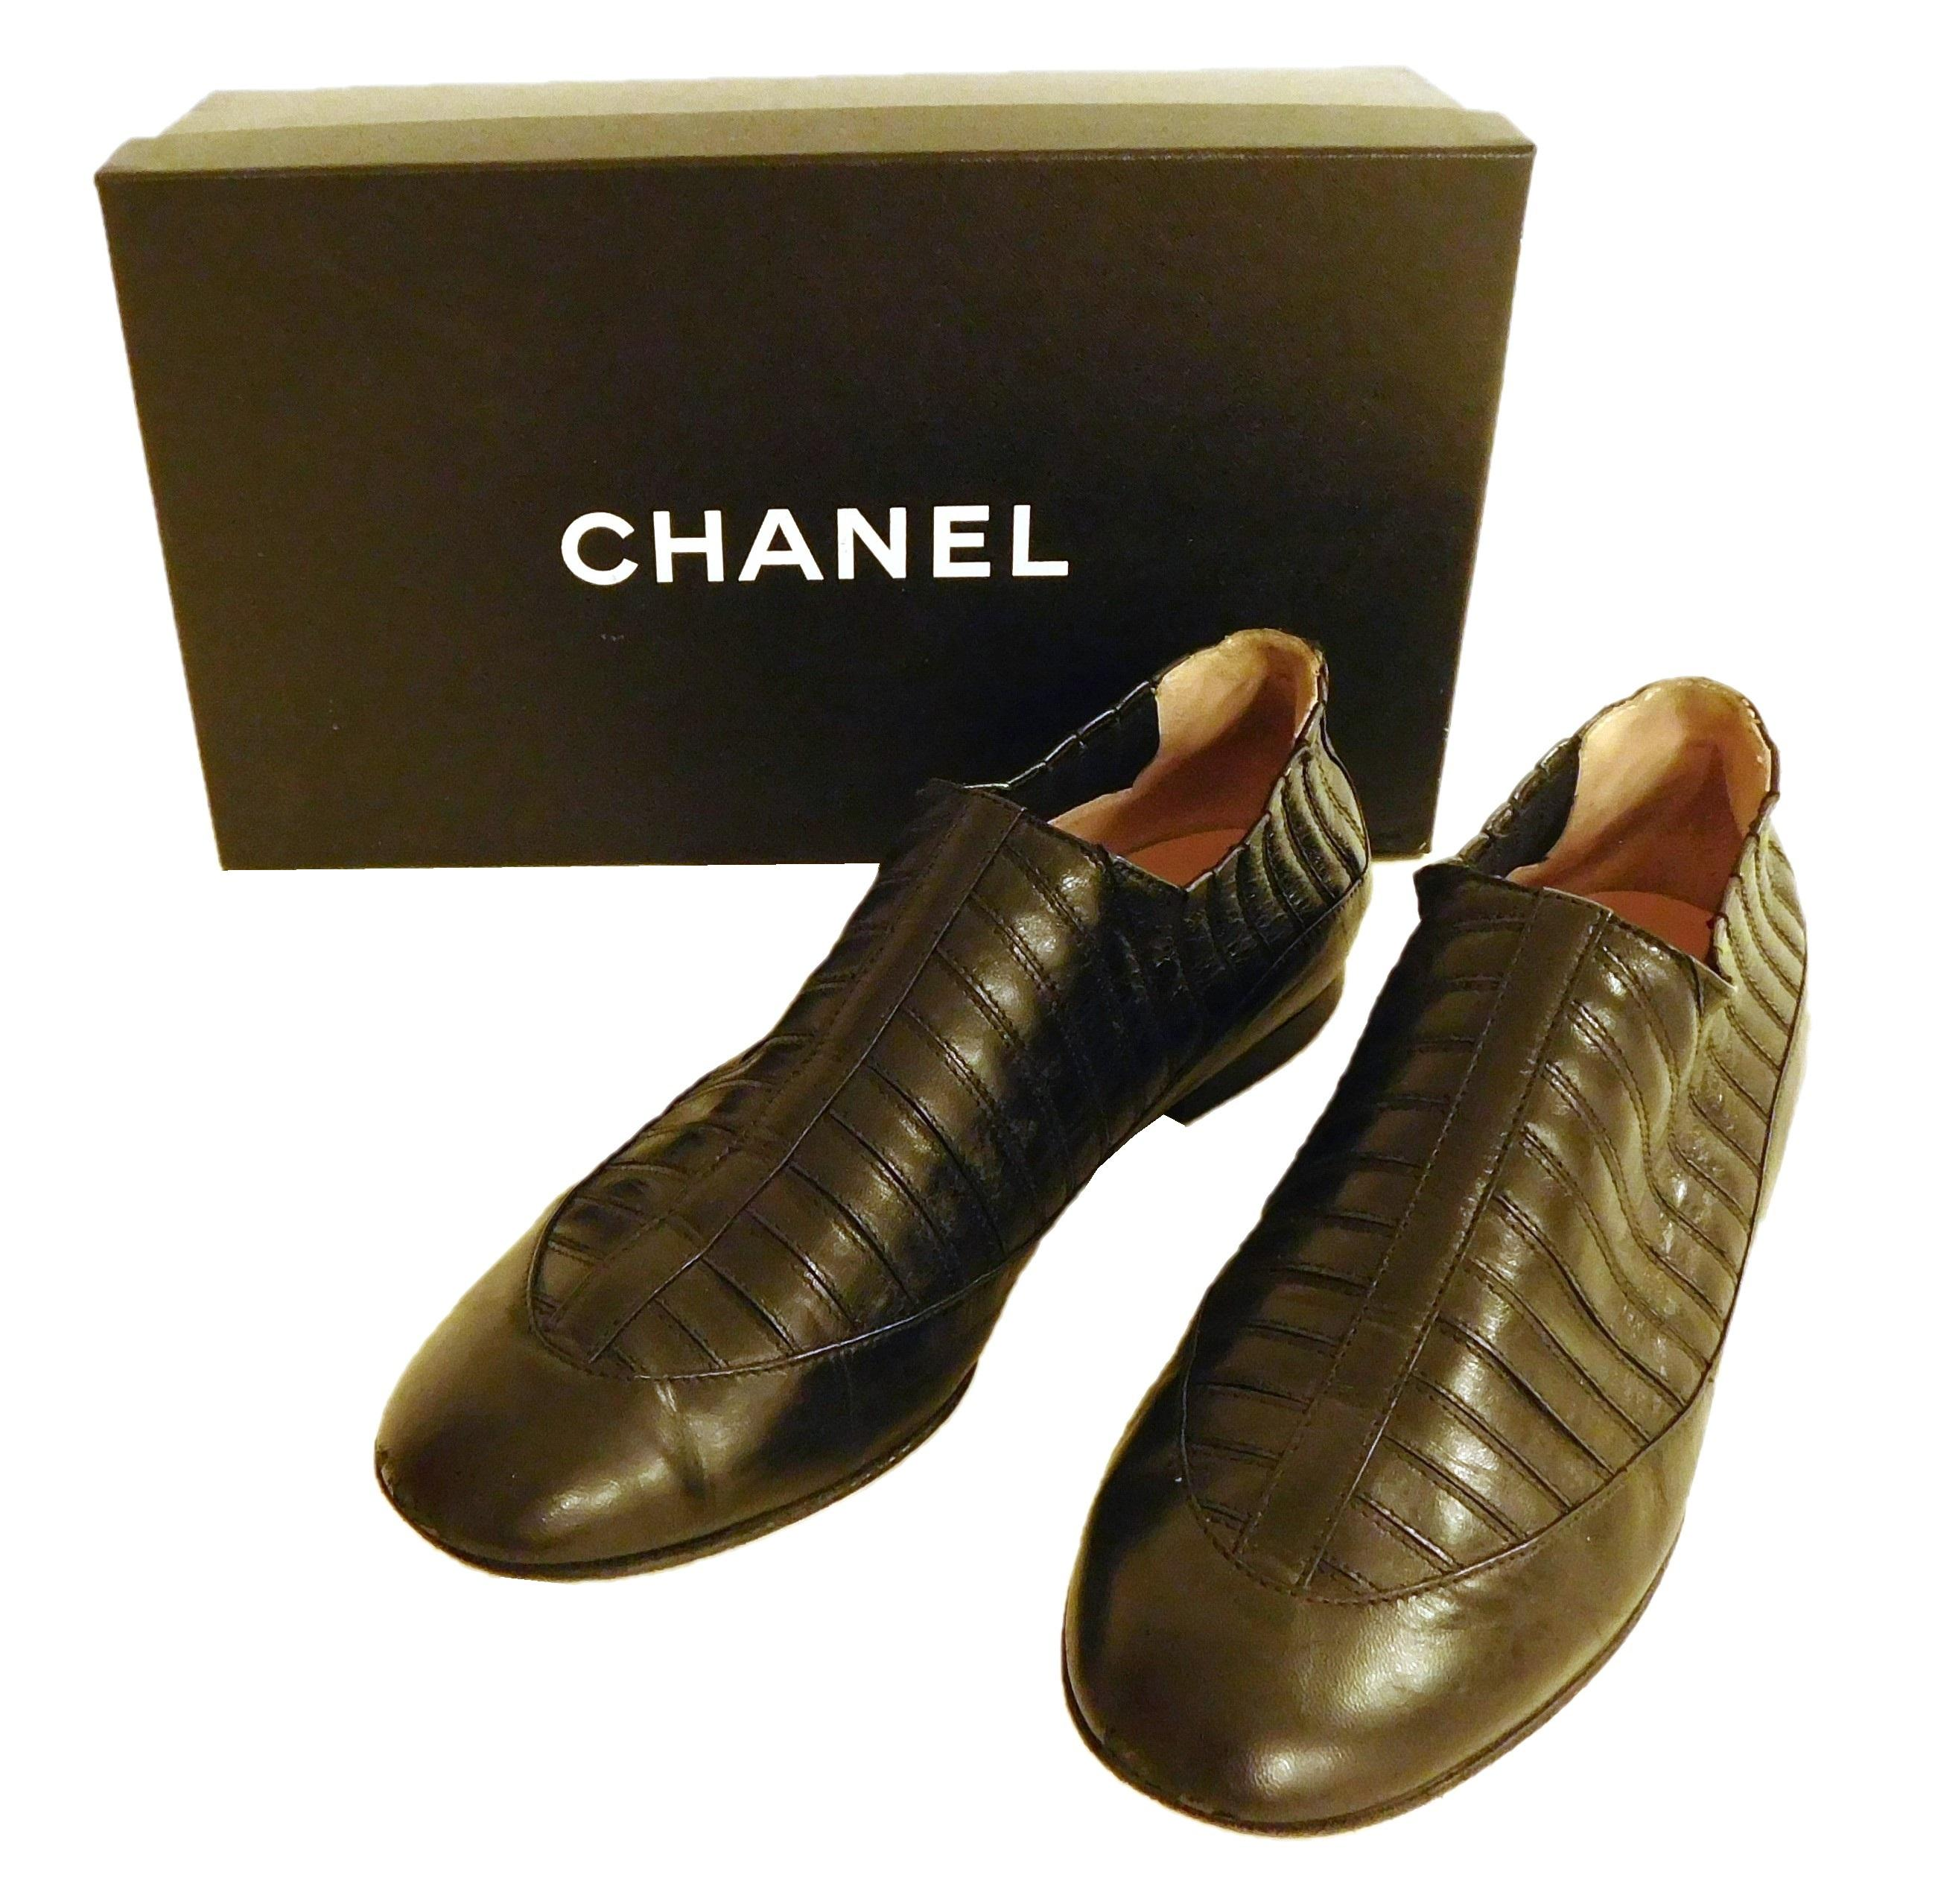 VINTAGE CLOTHING: One pair women's Chanel flats, size 38, unusual style of striped black leather, with stretch elastic between panel..